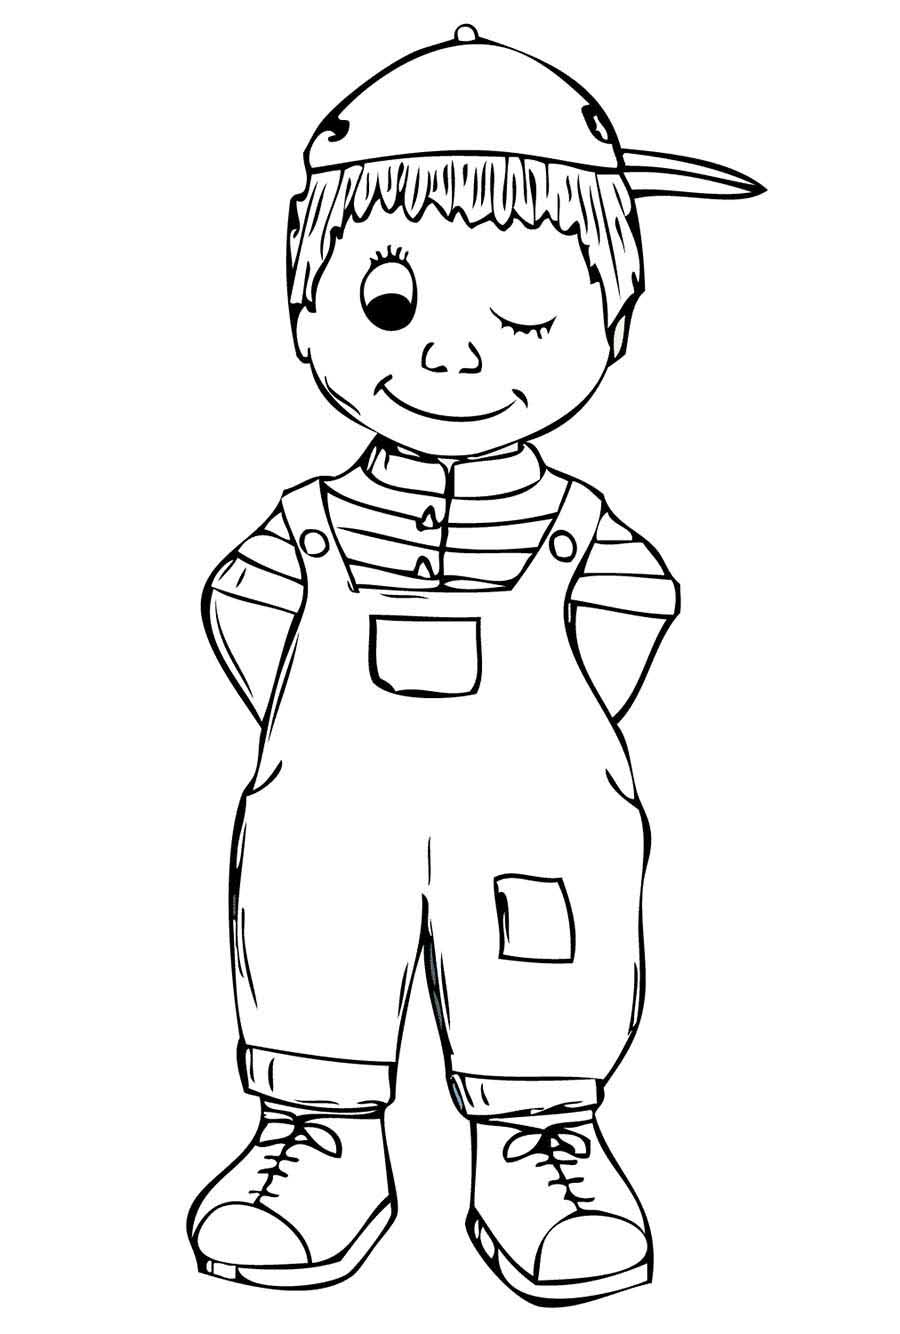 colouring page of a boy boy face coloring pages coloring home page a colouring of boy